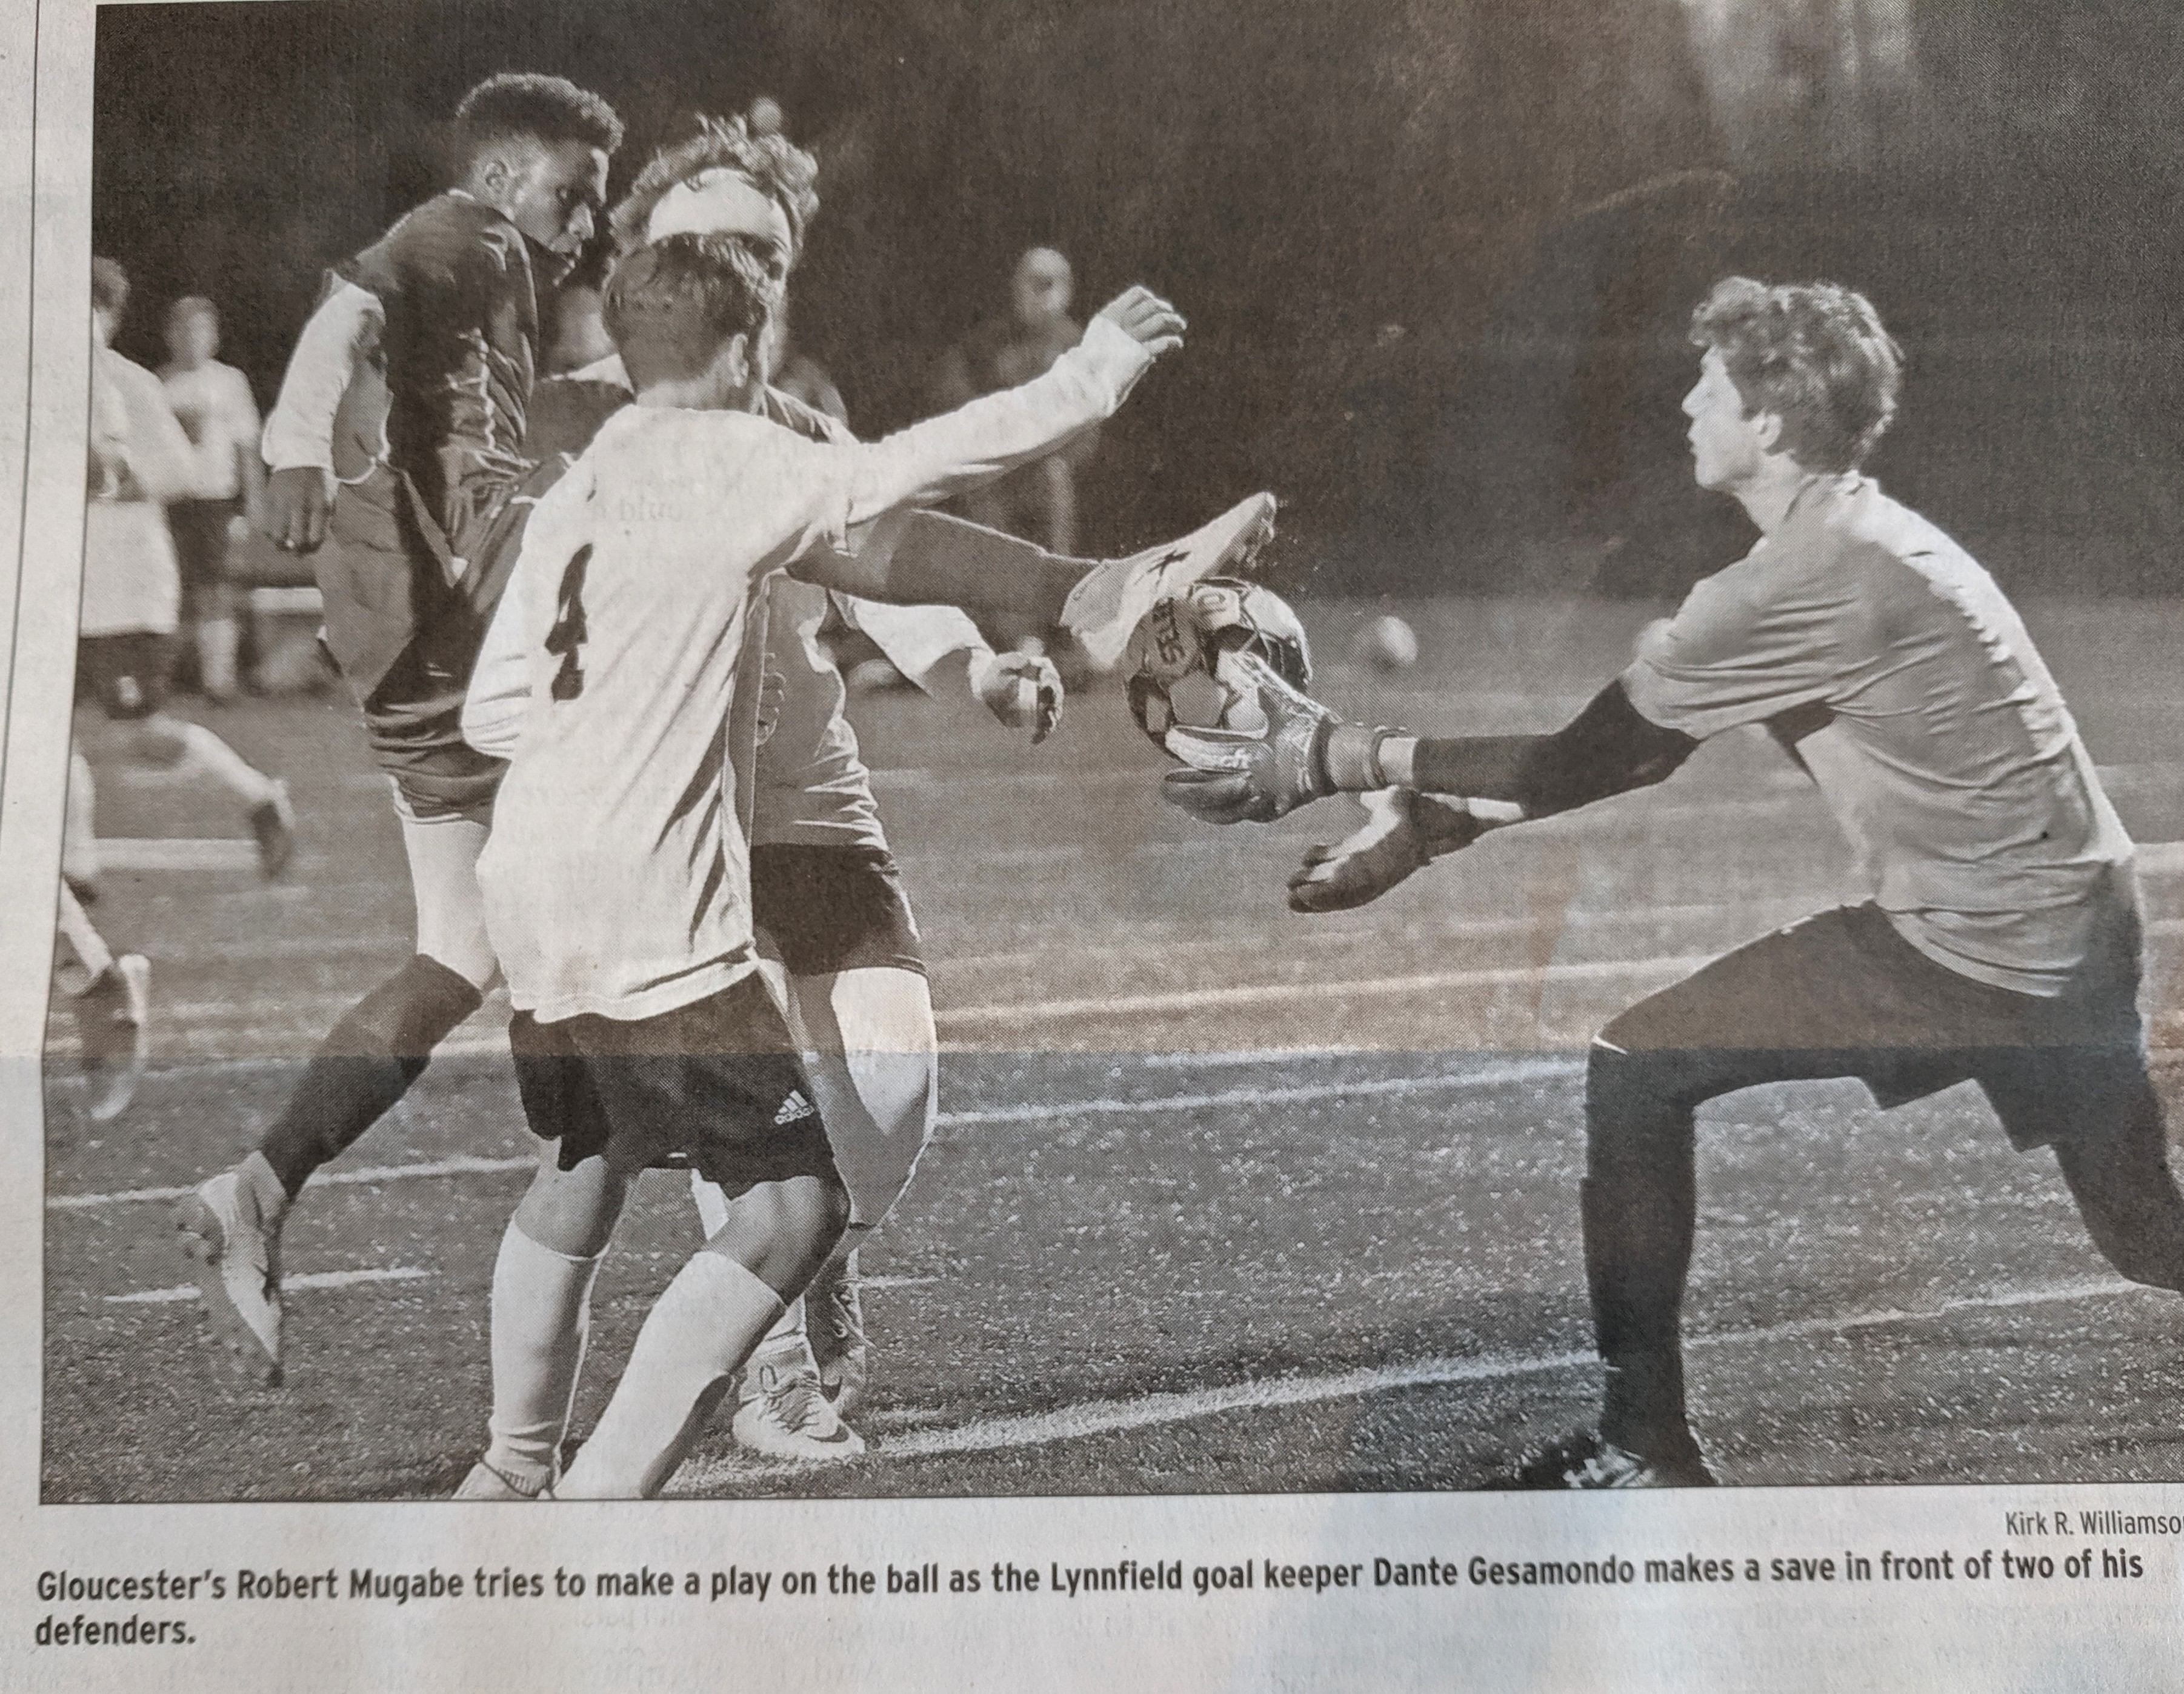 © photograph copyright Kirk R Williamson for Gloucester Daily Times.jpg